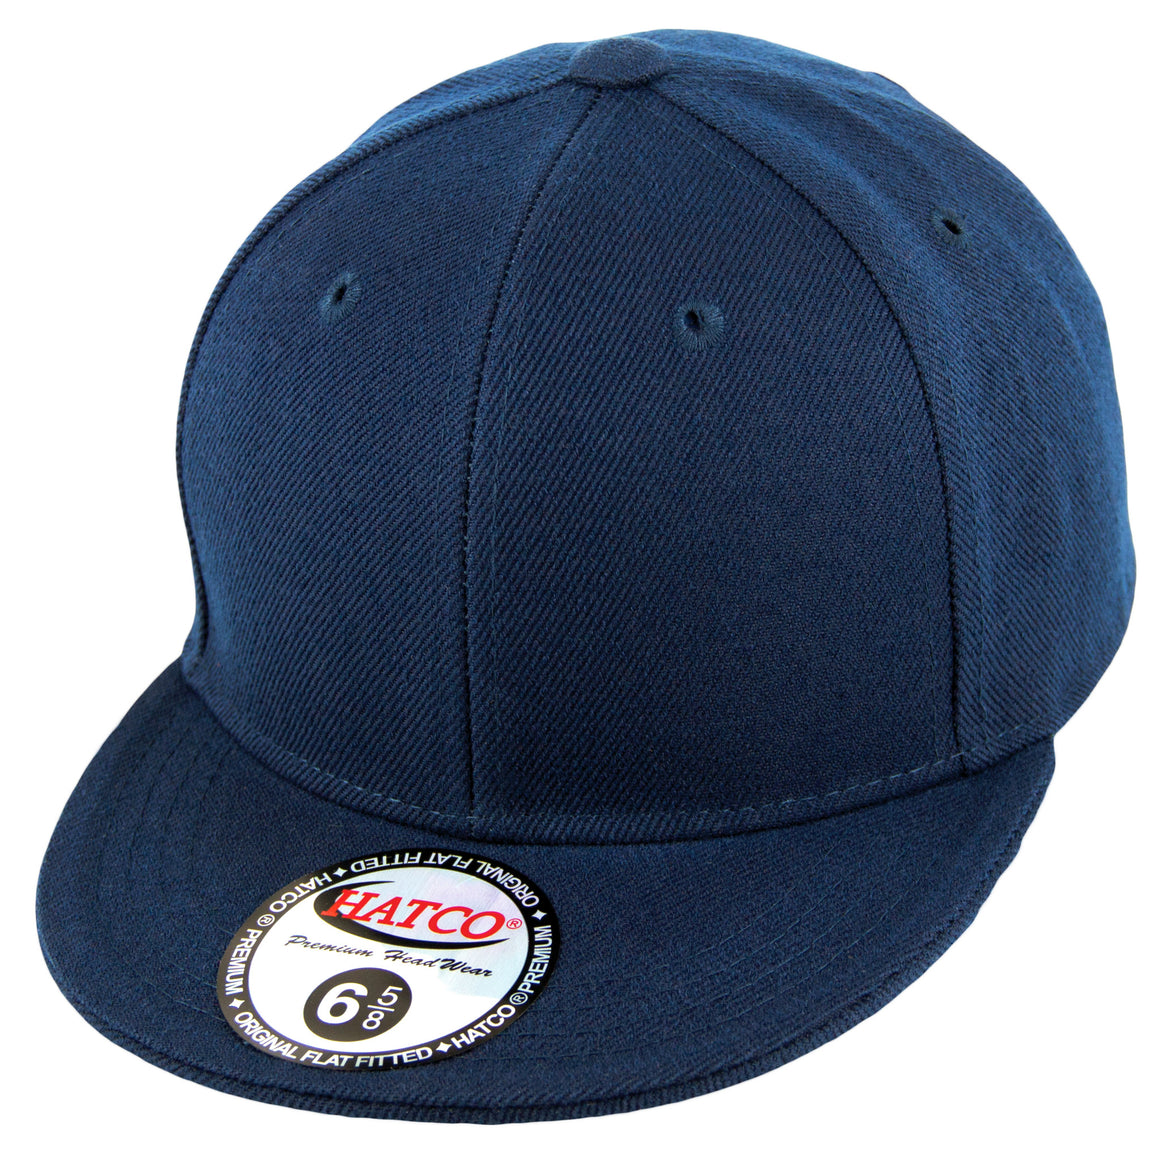 Blank Flat Fitted Cap - Kids - Navy - HATCOcaps.com